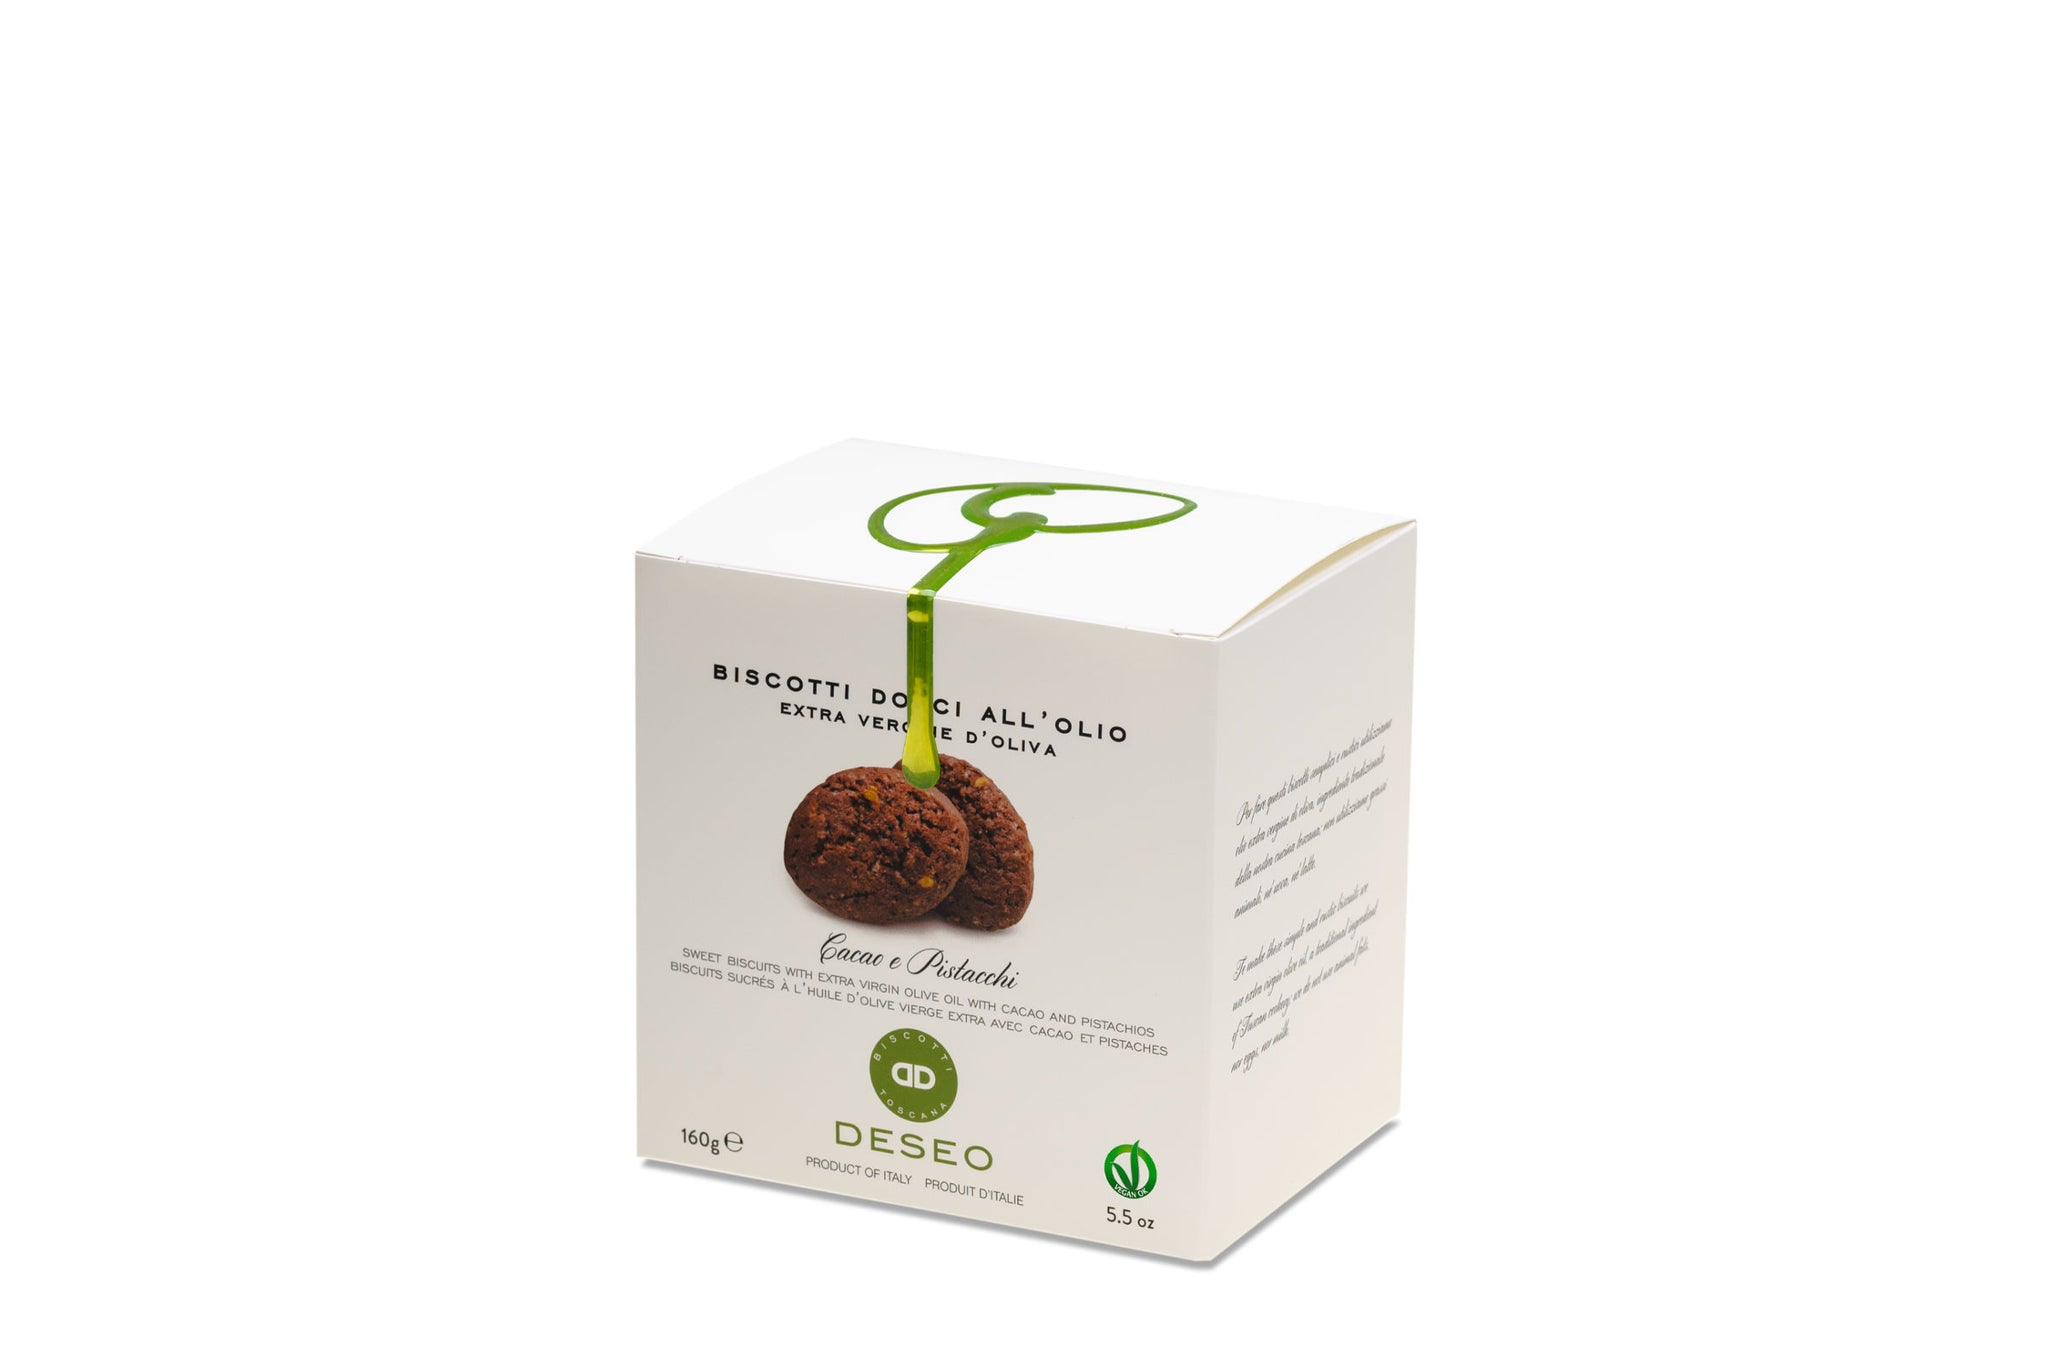 Deseo Cocoa & Pistachios Vegan Biscuits w/ Extra Virgin Olive Oil 160g Shop the Red Beetle